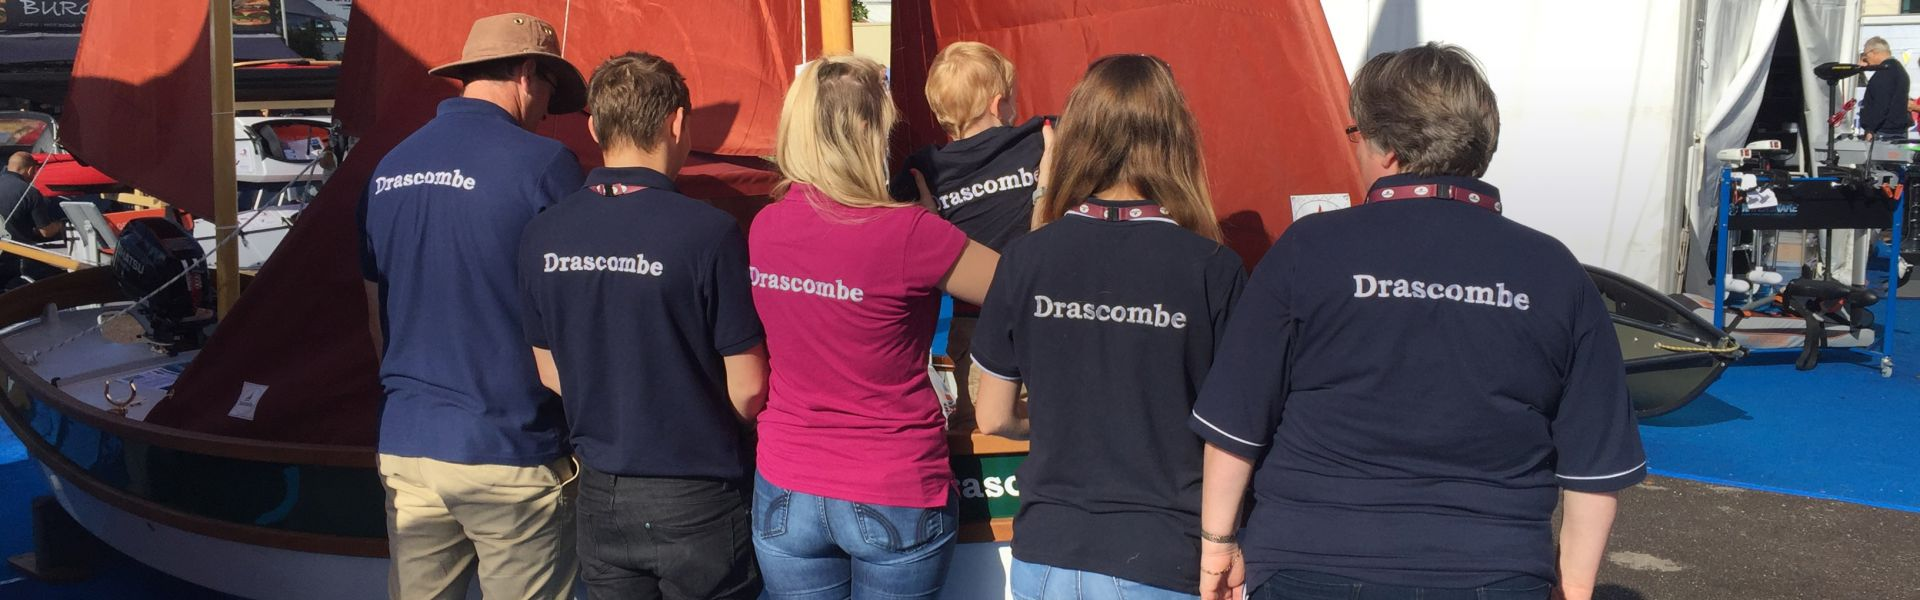 About Drascombe